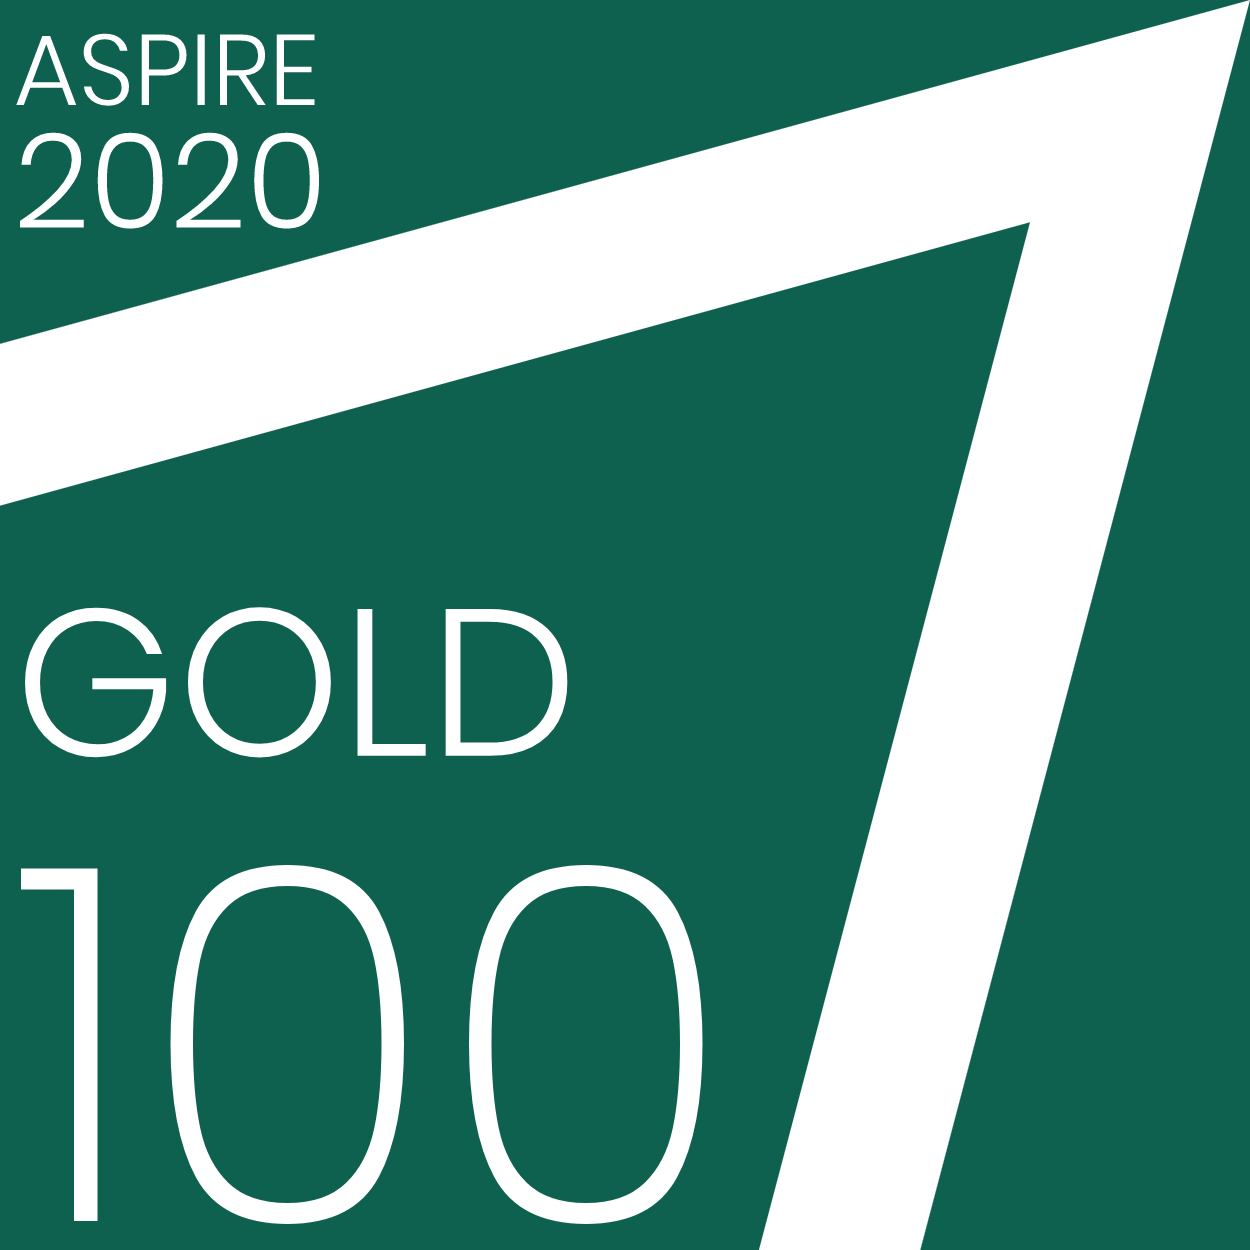 Aspire Gold 100 badge